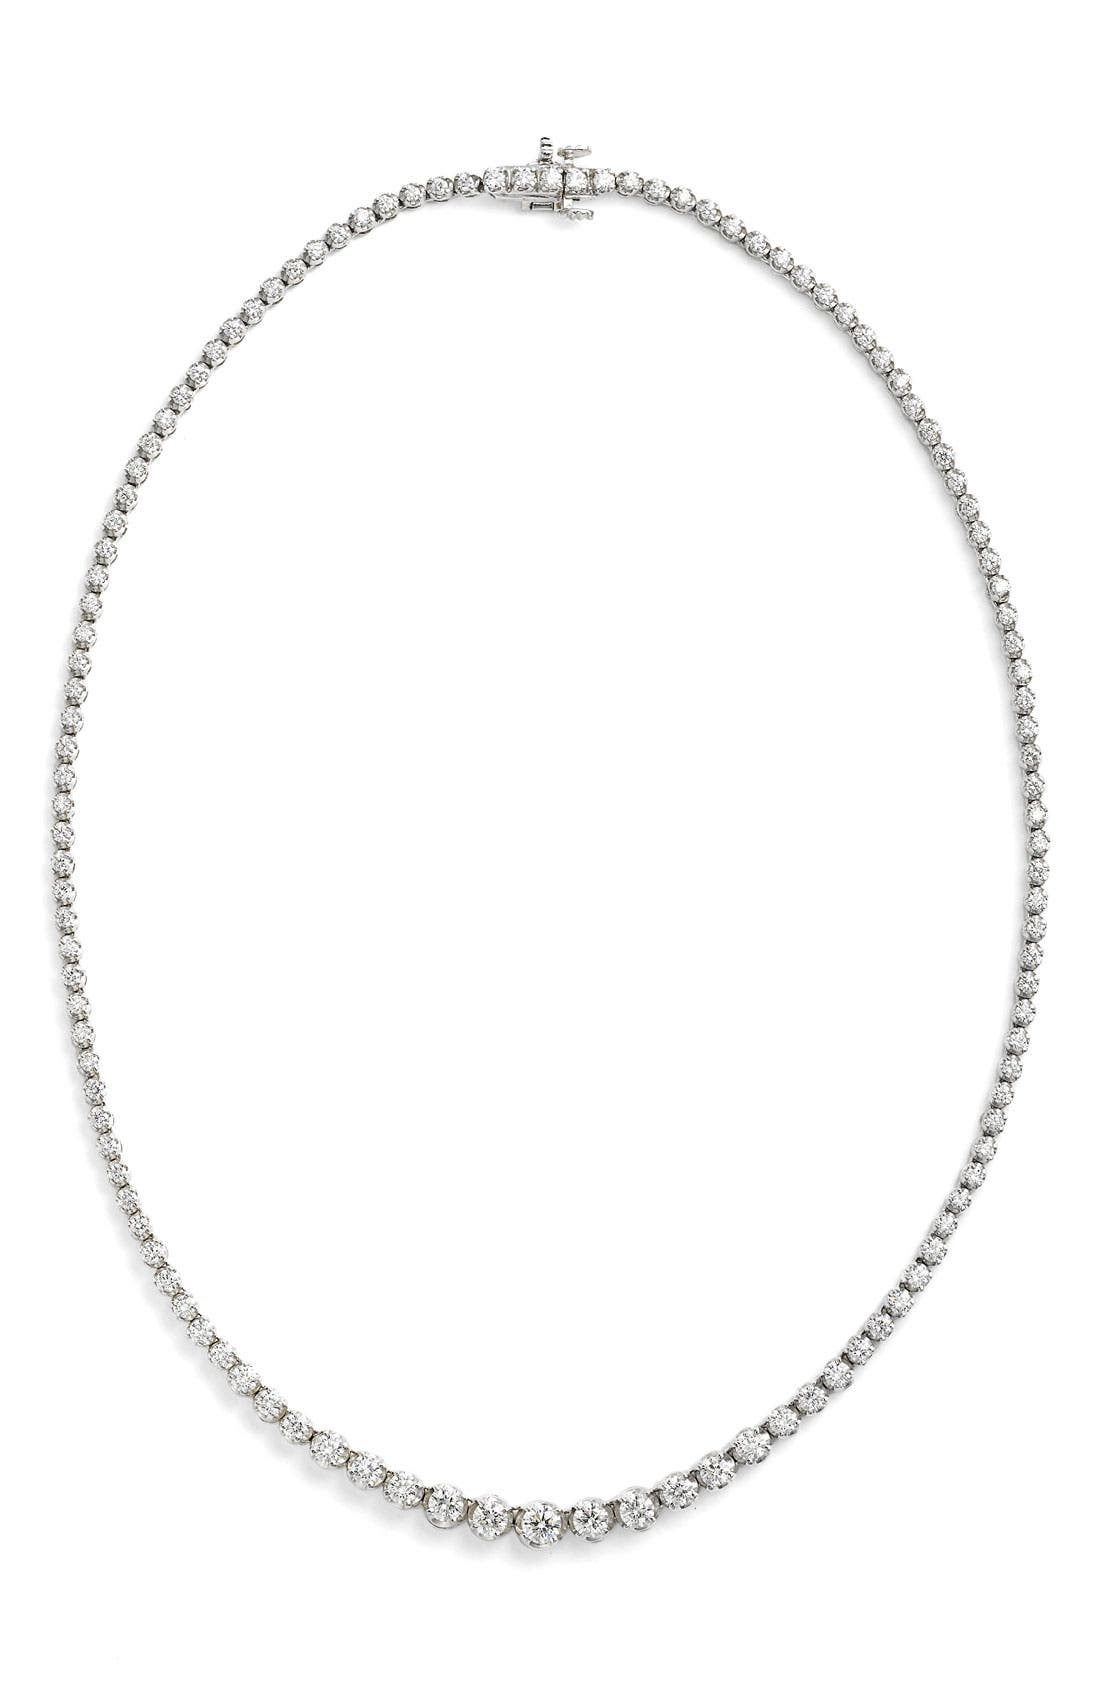 Main Image - Kwiat 'Riviera' Diamond Choker Necklace